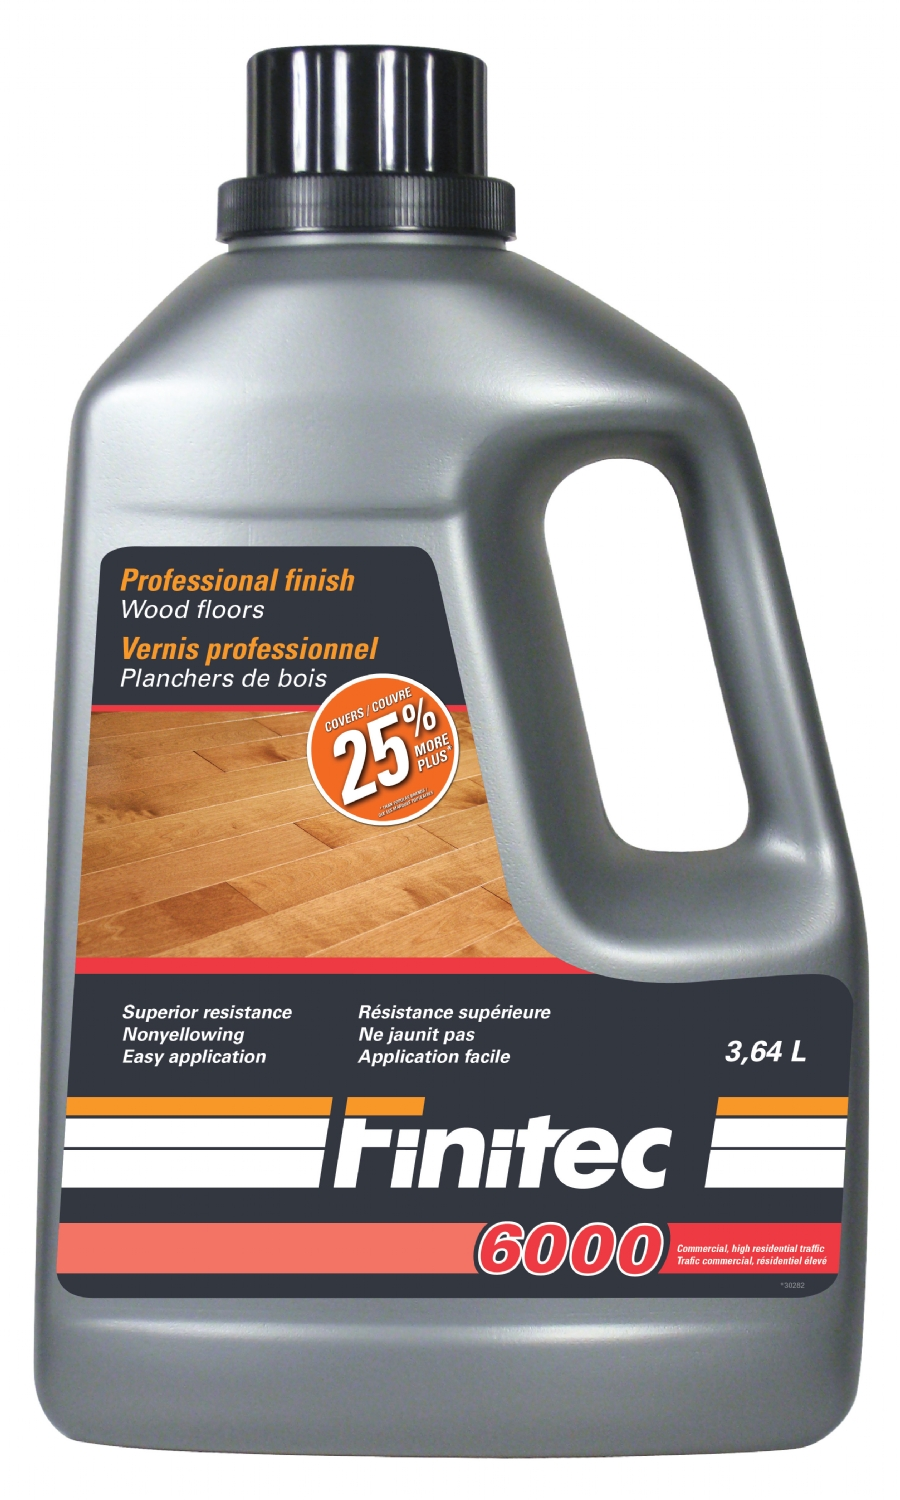 Finitec 6000 Vernis pour planchers de bois - Wood floor finish